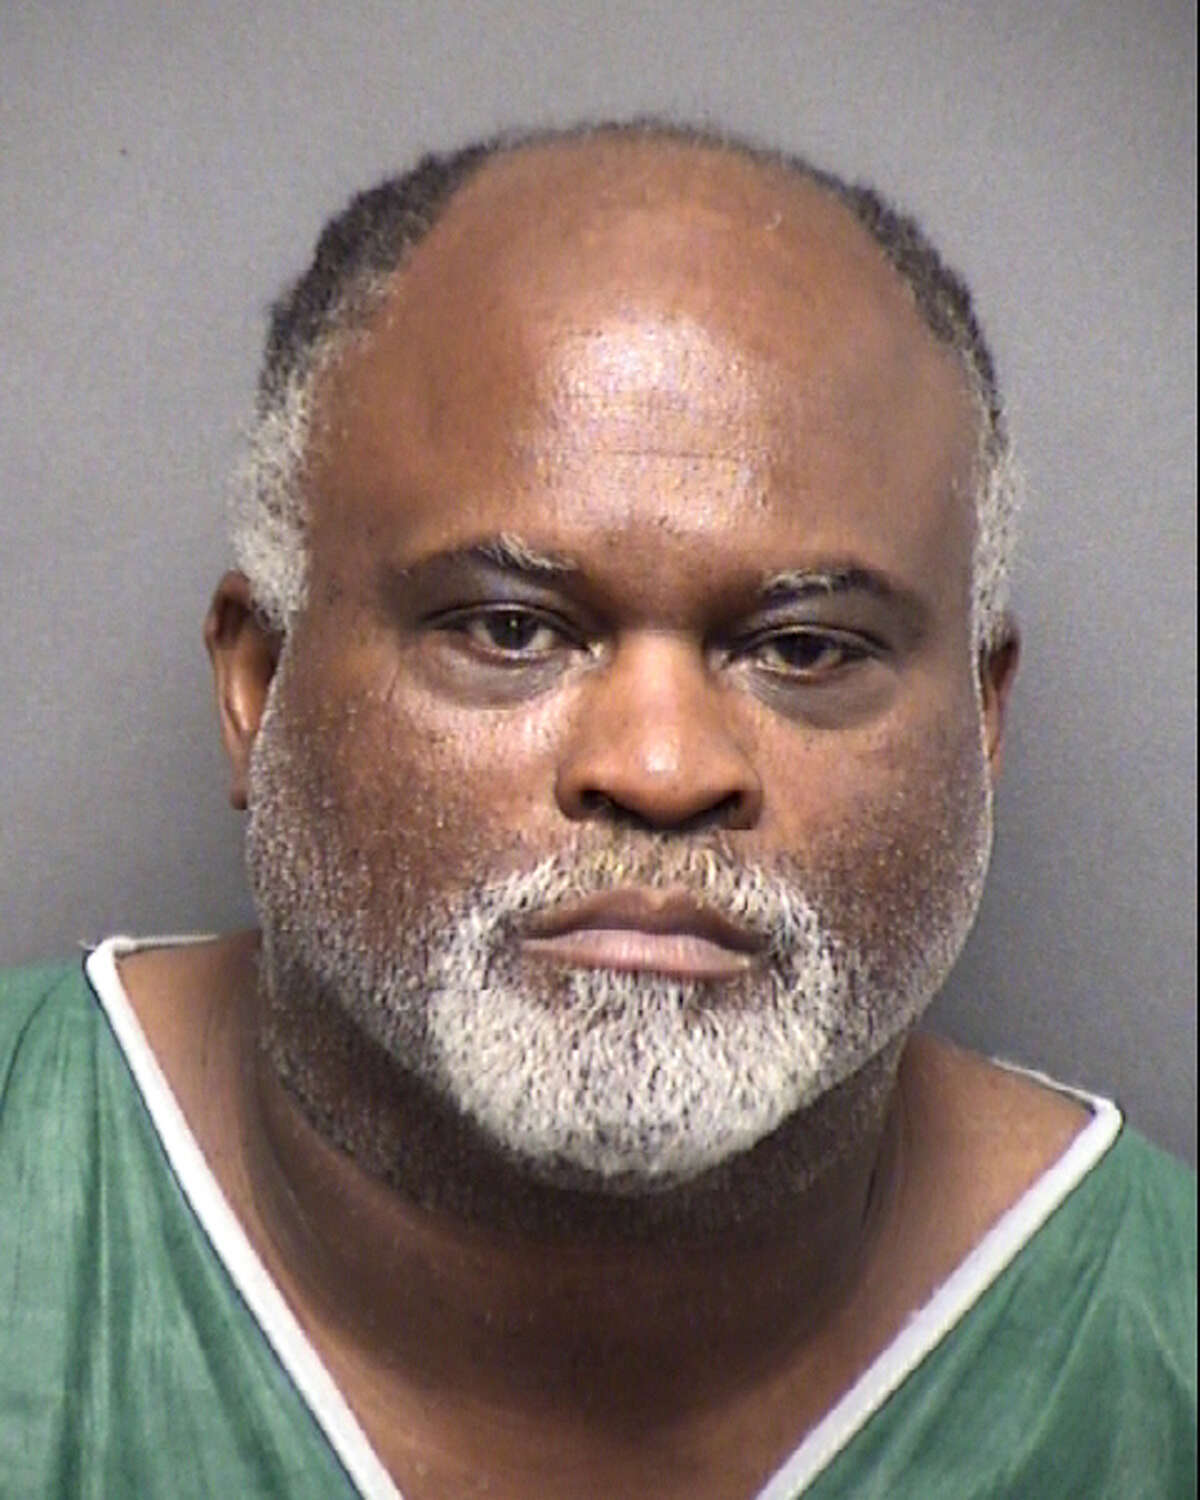 Timothy Dewayne Willis, 52, was arrested and charged with arson in connection to a fire at a Northeast Side hotel.